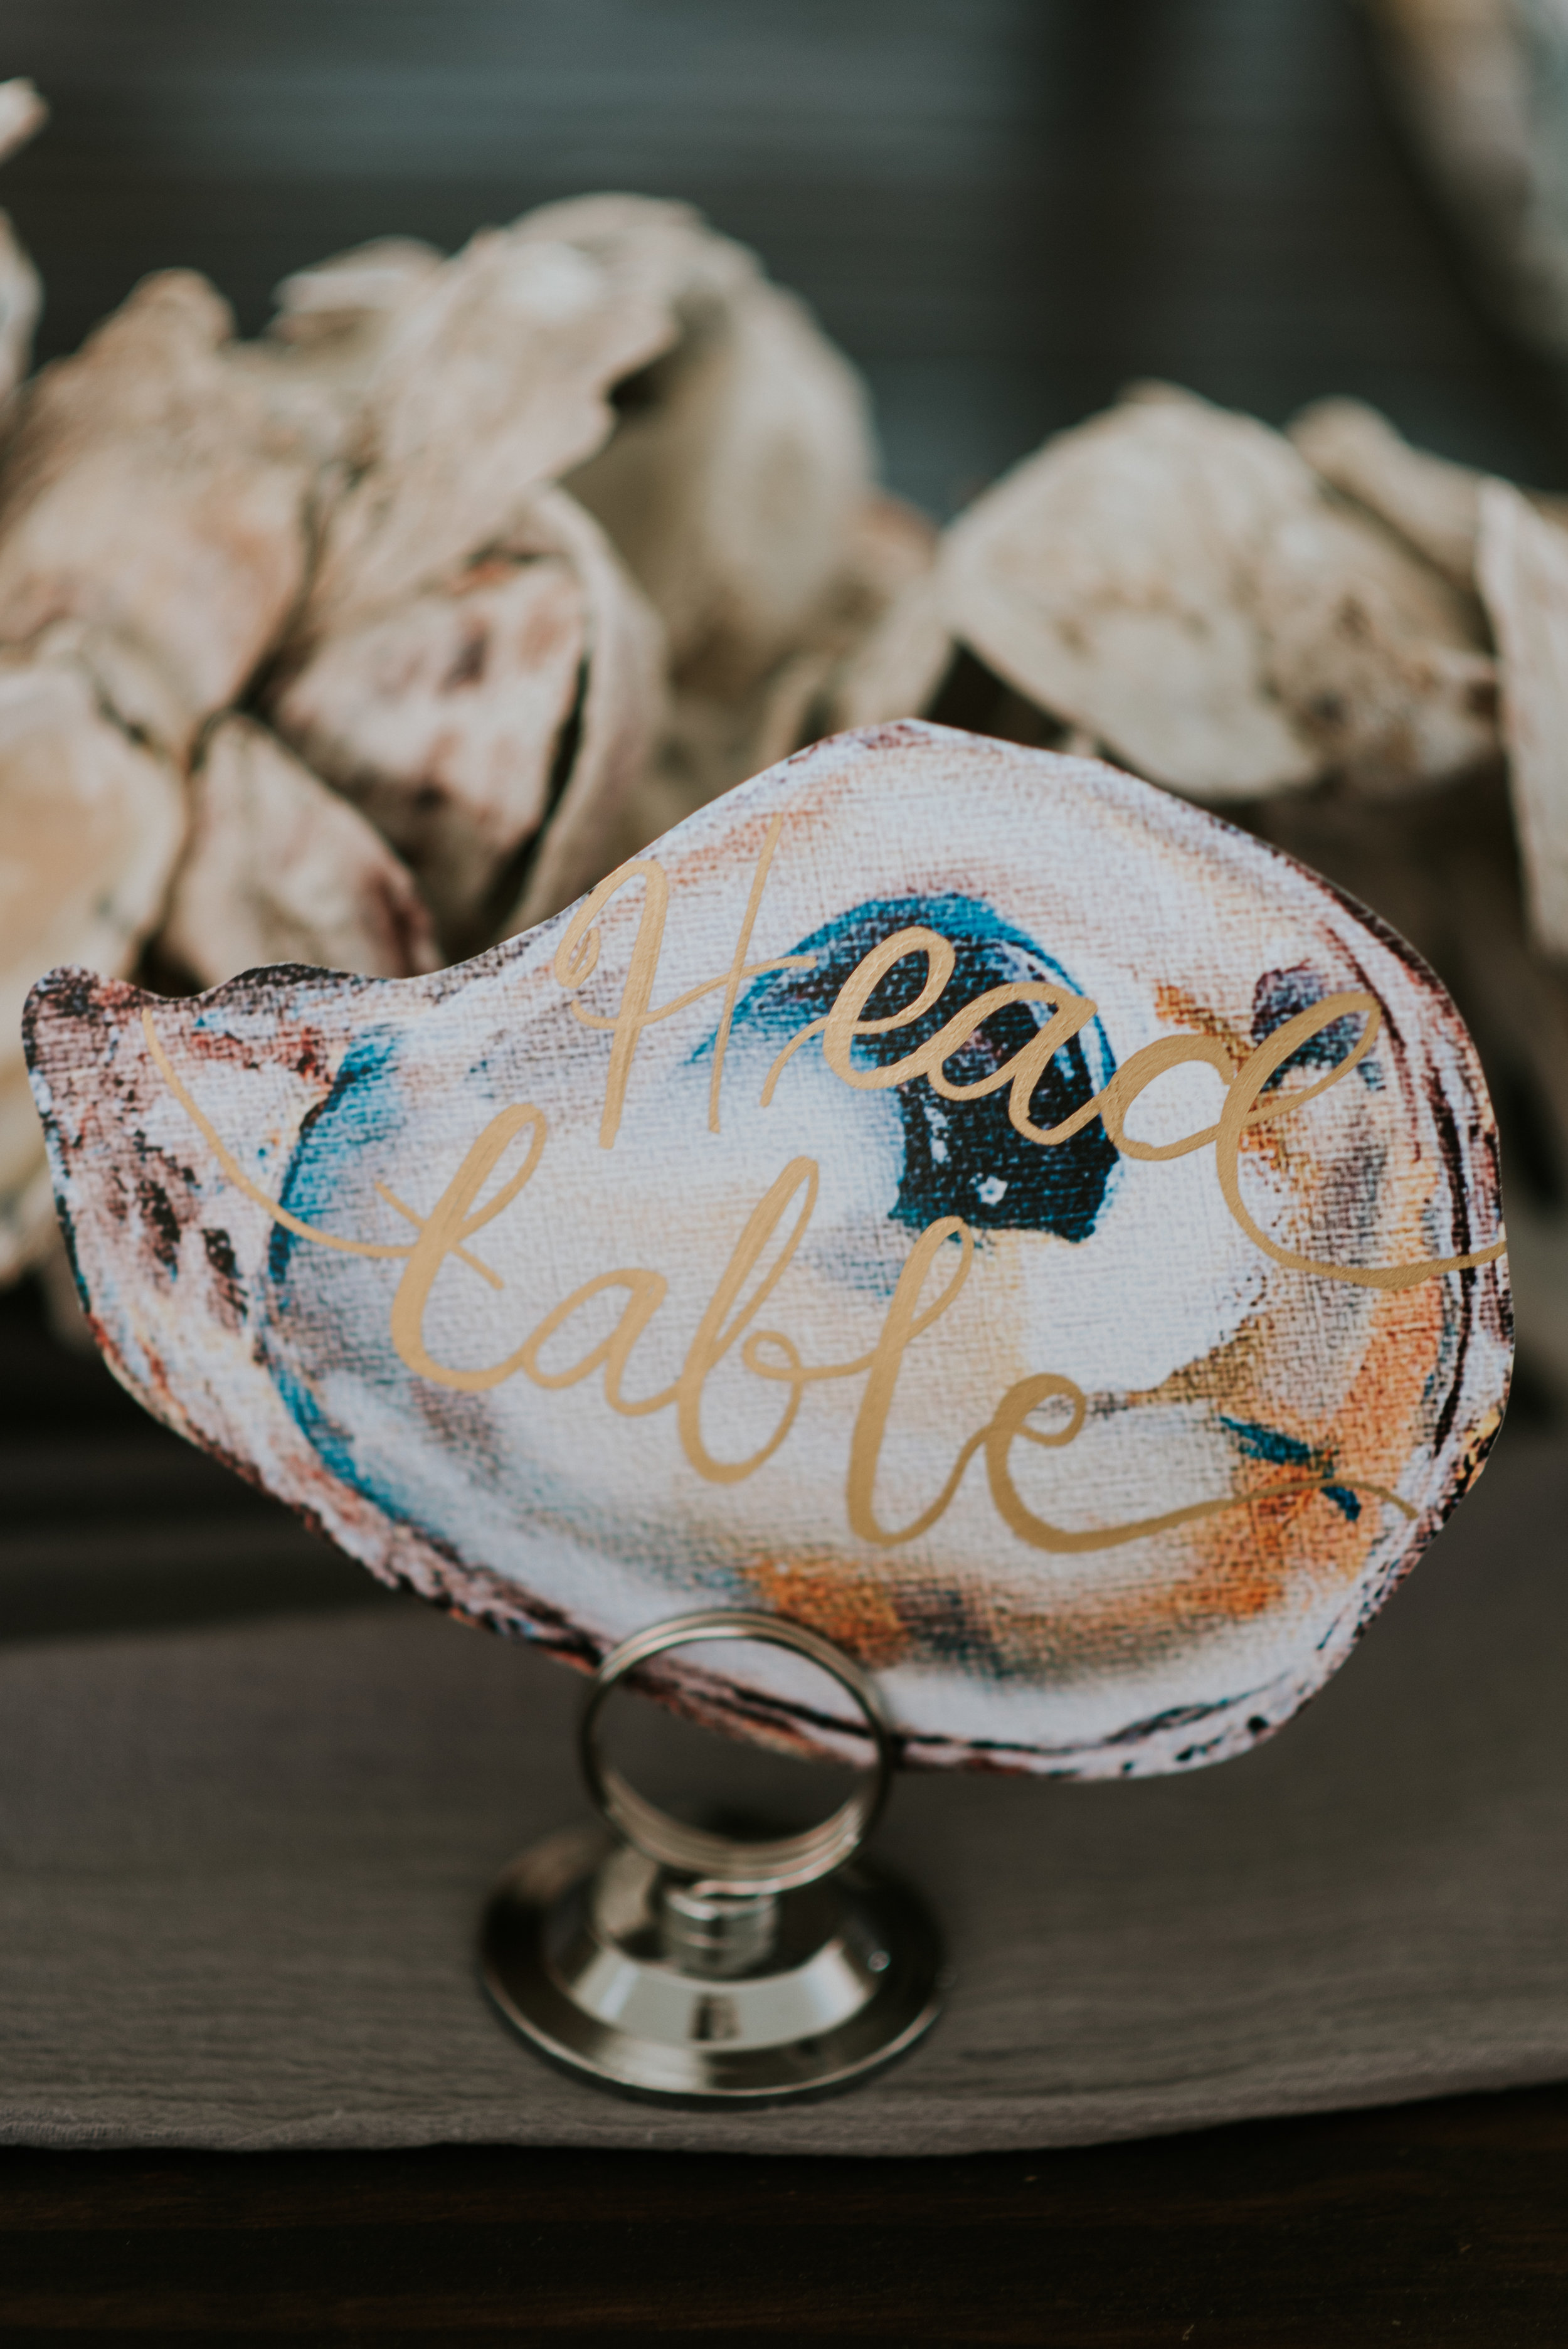 Rustic Oyster Themed Eastern Shore Maryland Outdoor Wedding by East Made Event Company Wedding Planner and Bekah Kay Creative553.jpg